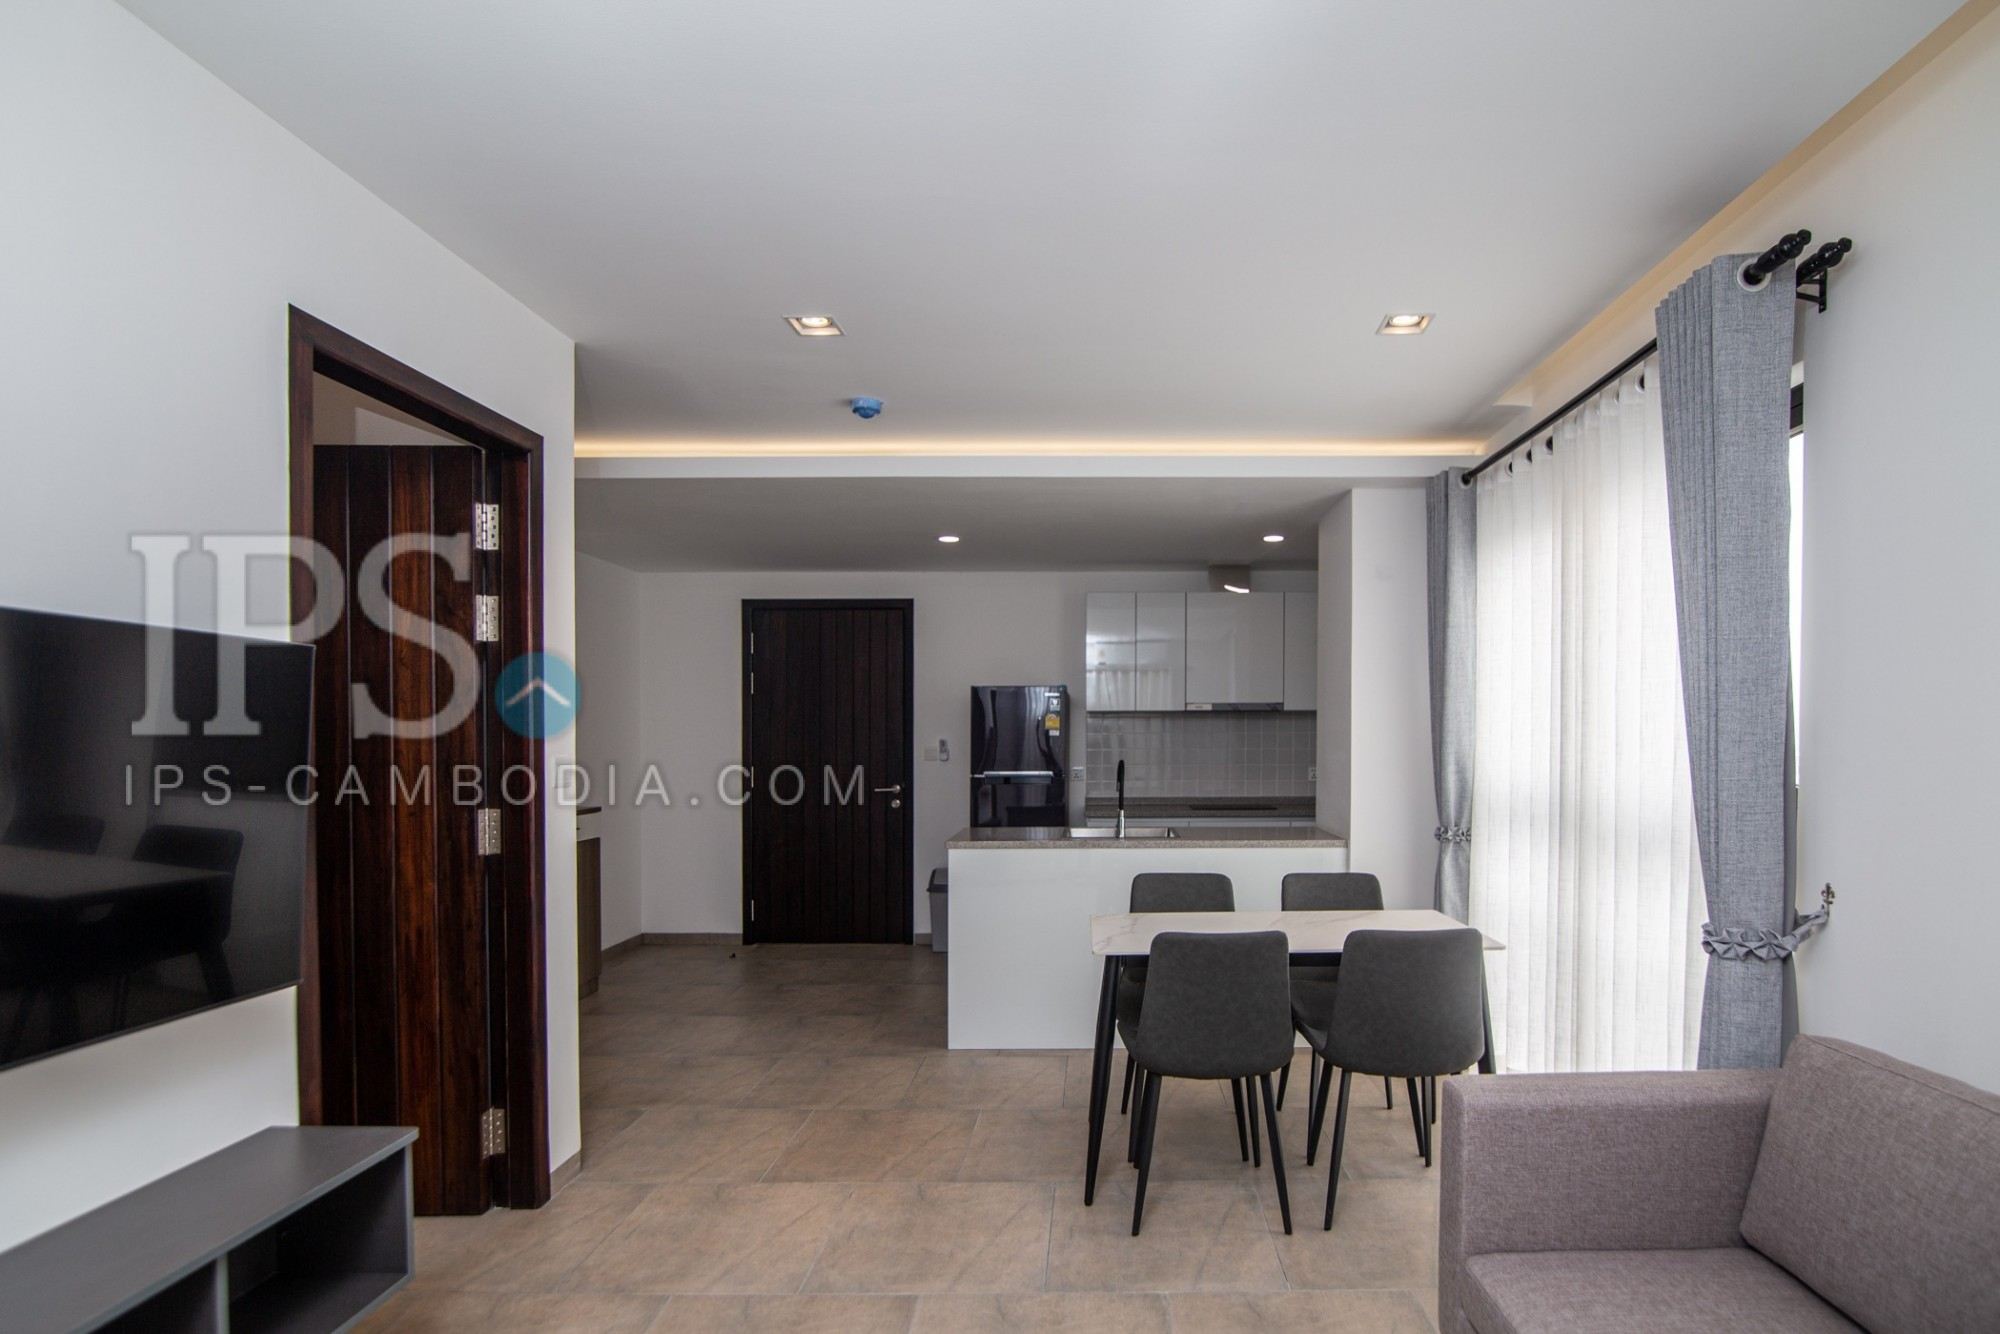 2 Bedroom Apartment For Rent - Khan Meanchey, Phnom Penh